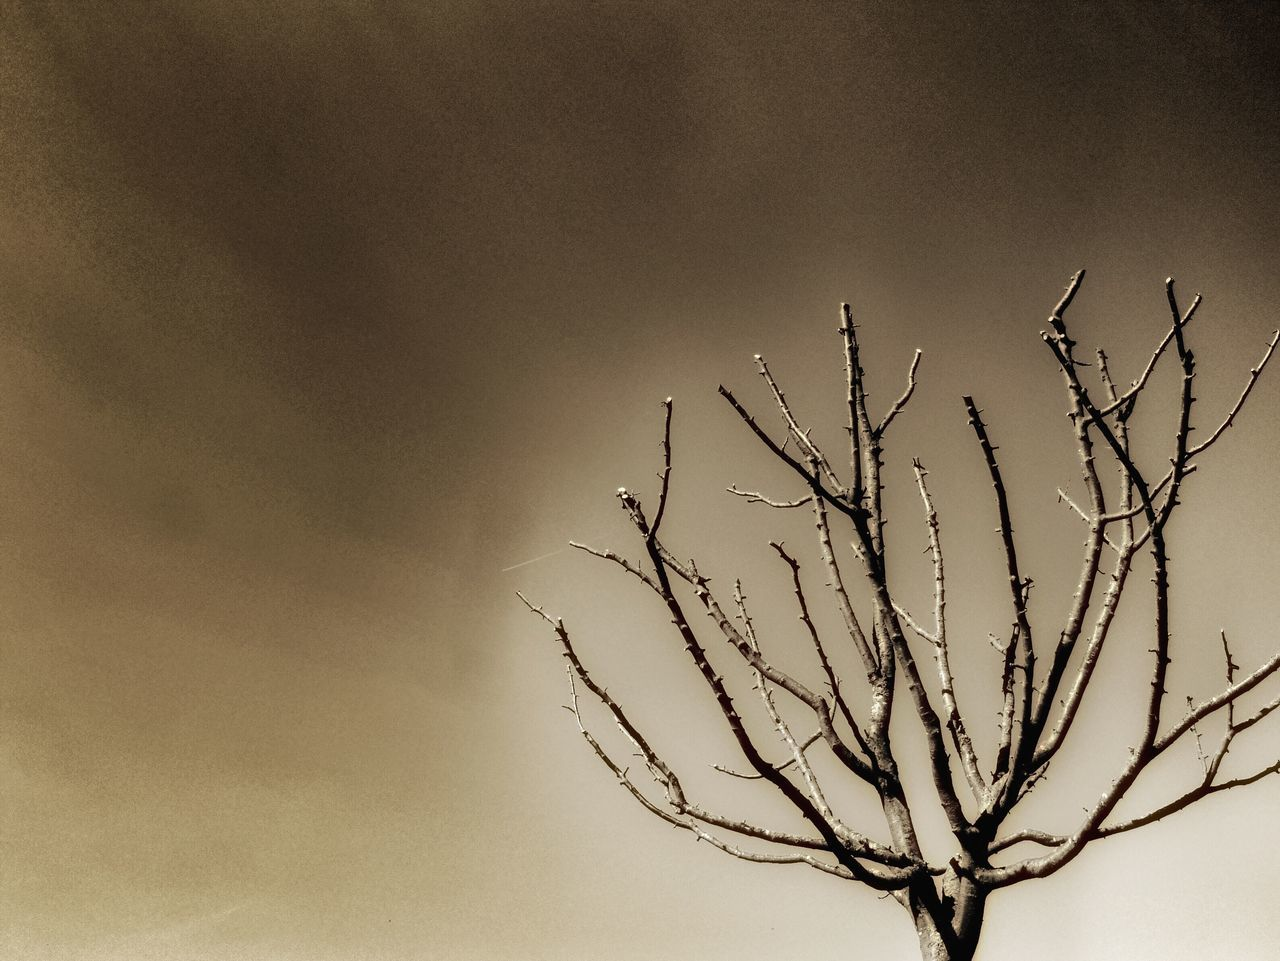 nature, branch, bare tree, sky, no people, outdoors, beauty in nature, day